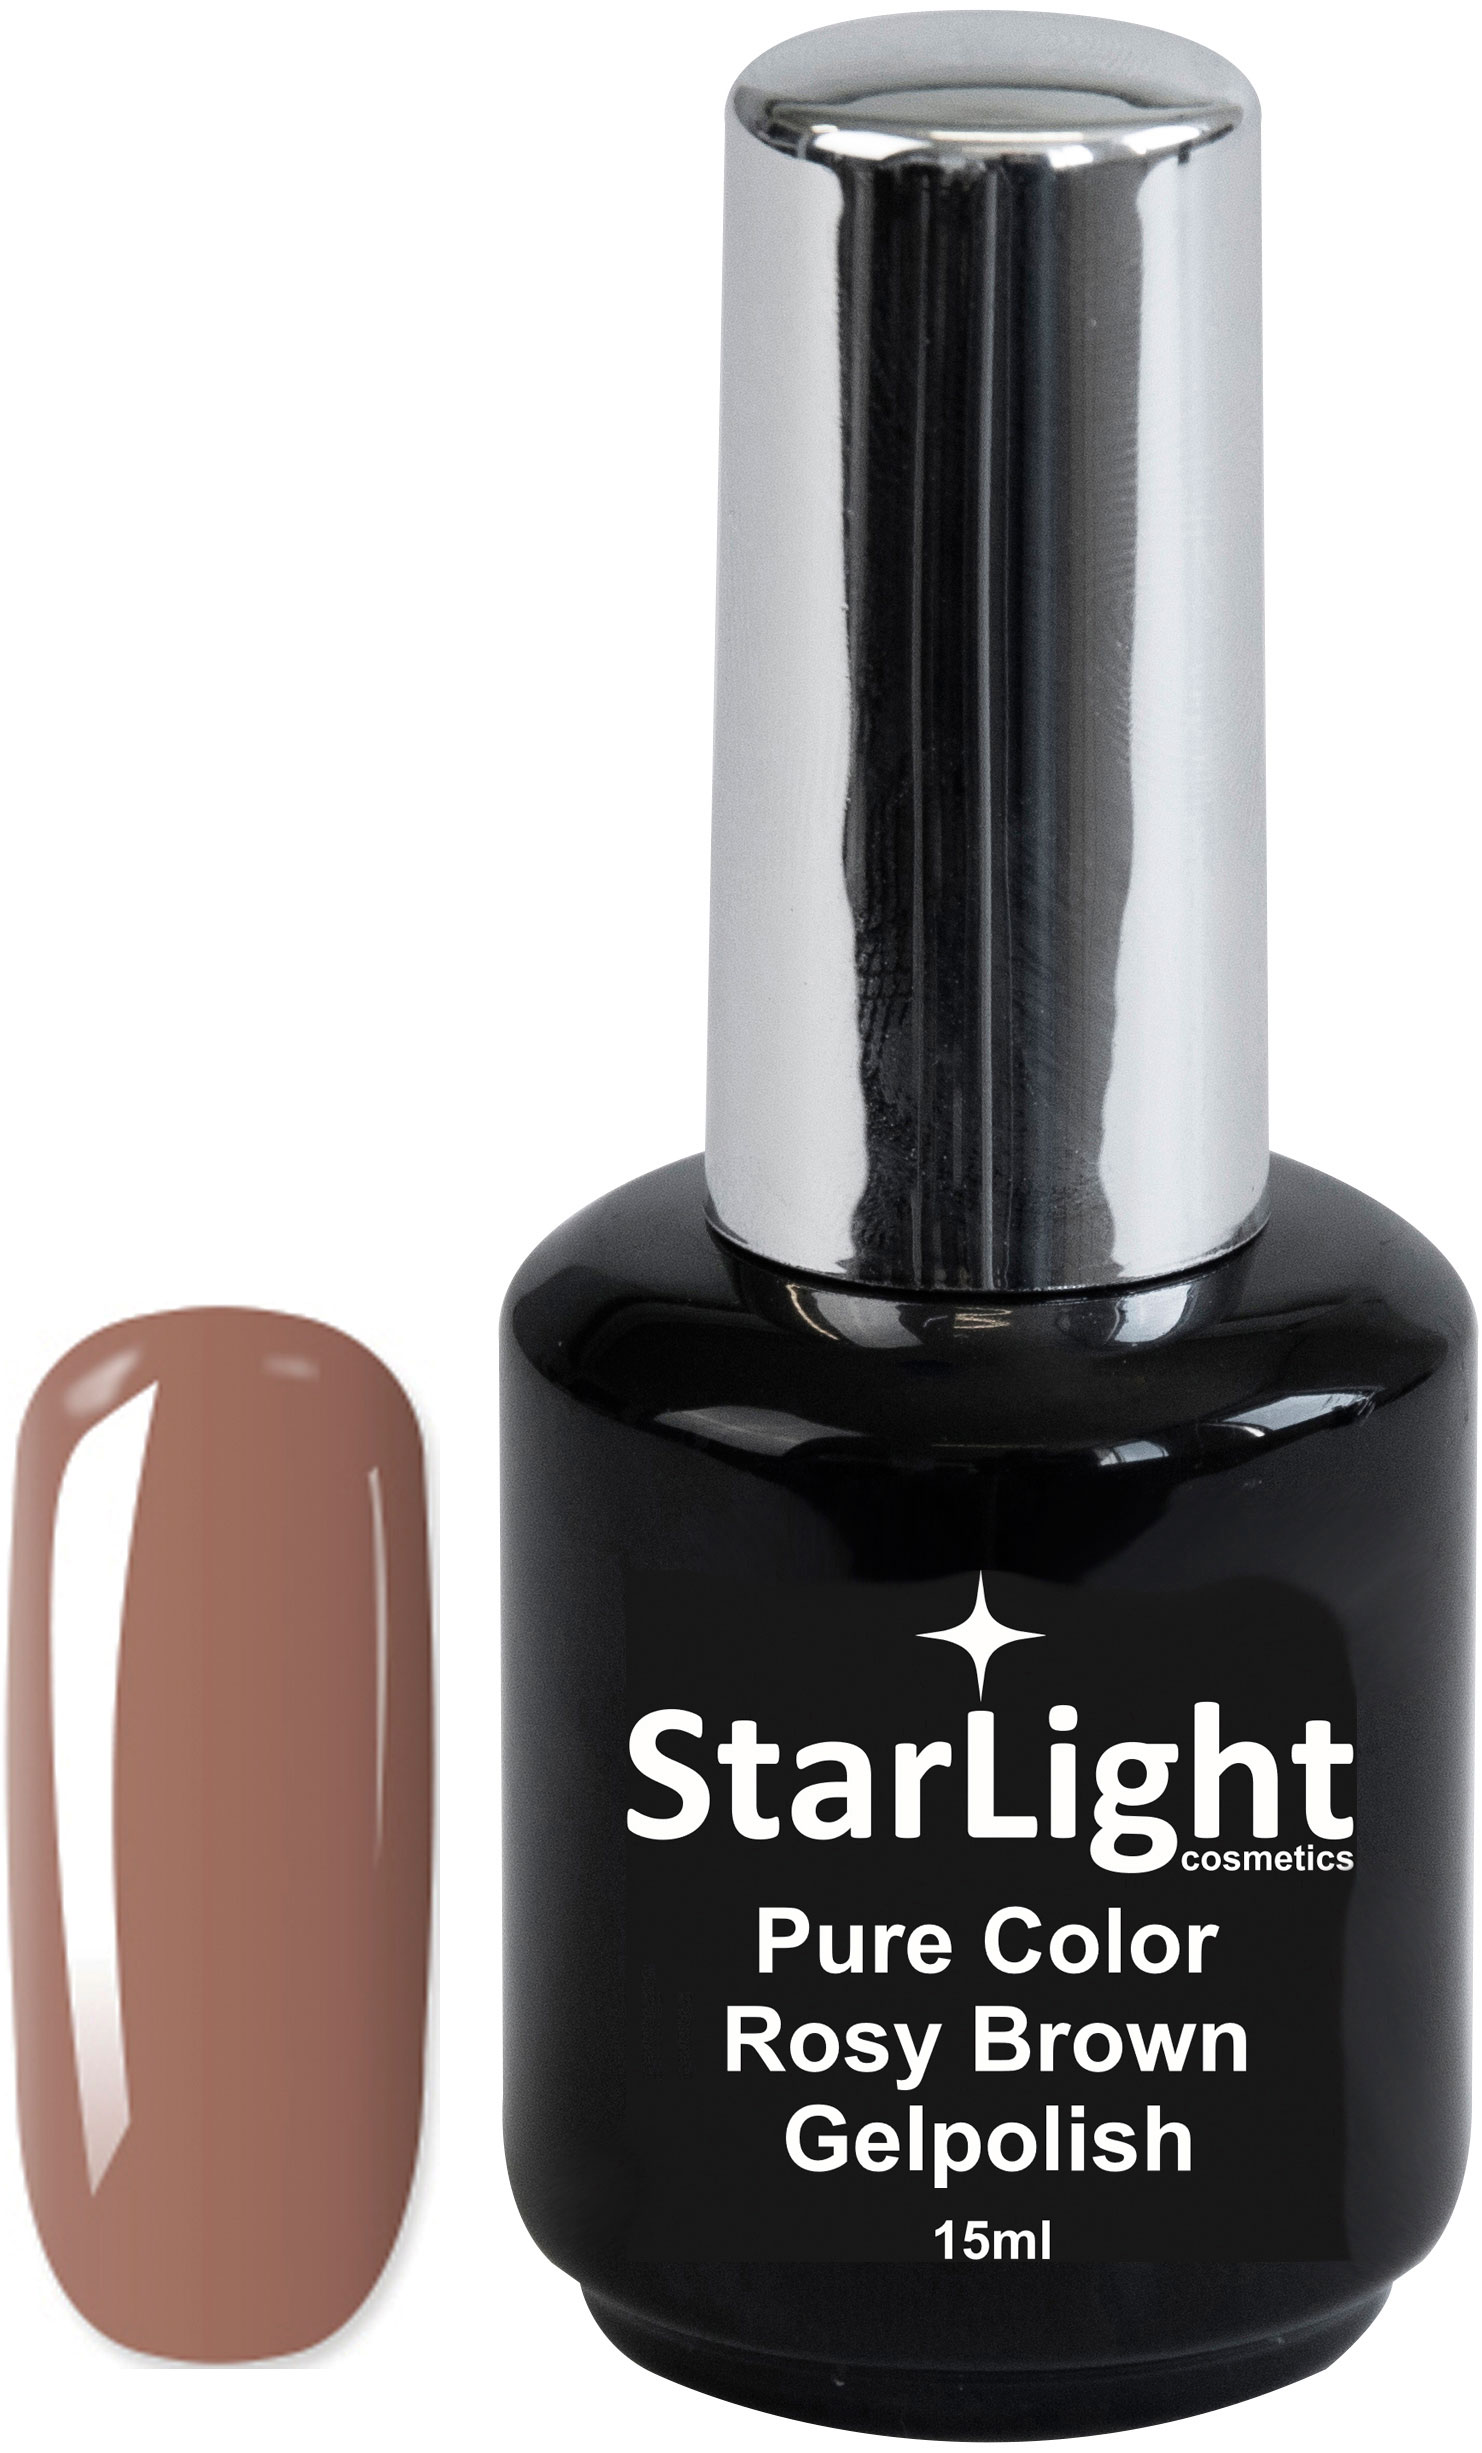 Naglar Gelpolish Pure Color Rosy Brown - 15 ml